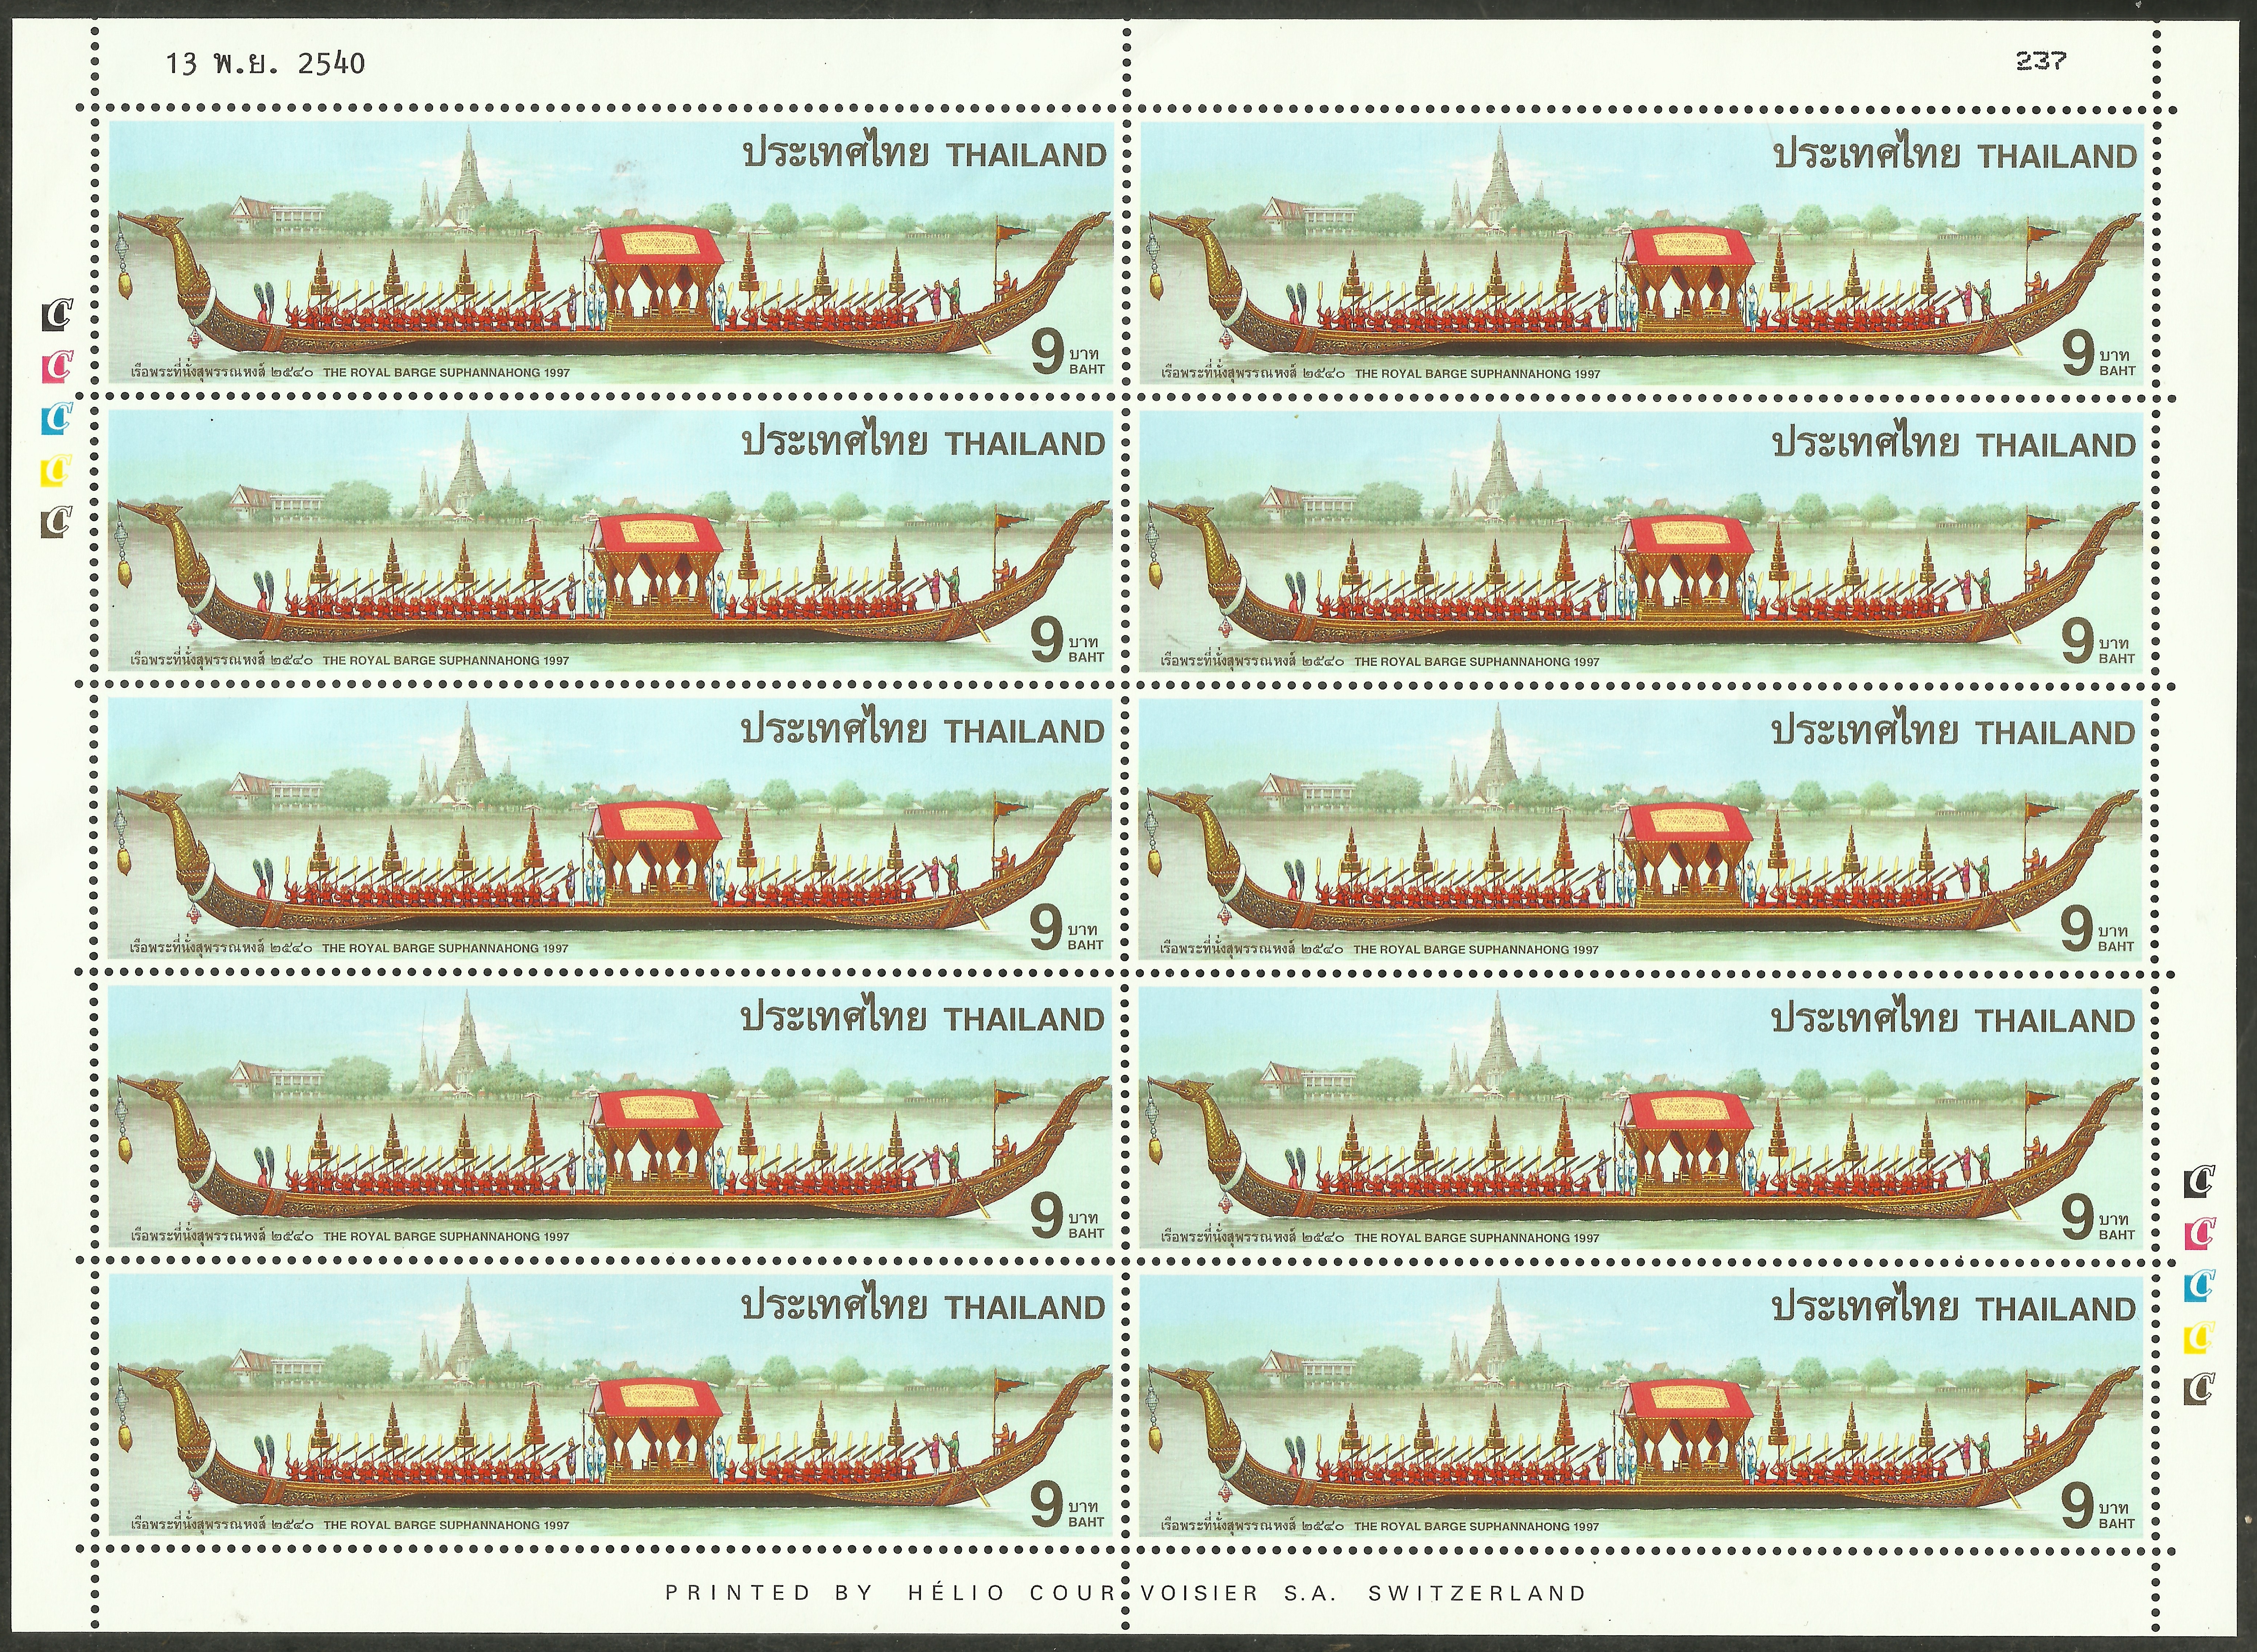 Thailand - Scott #1776 (1997) was printed in sheets of 10 stamps